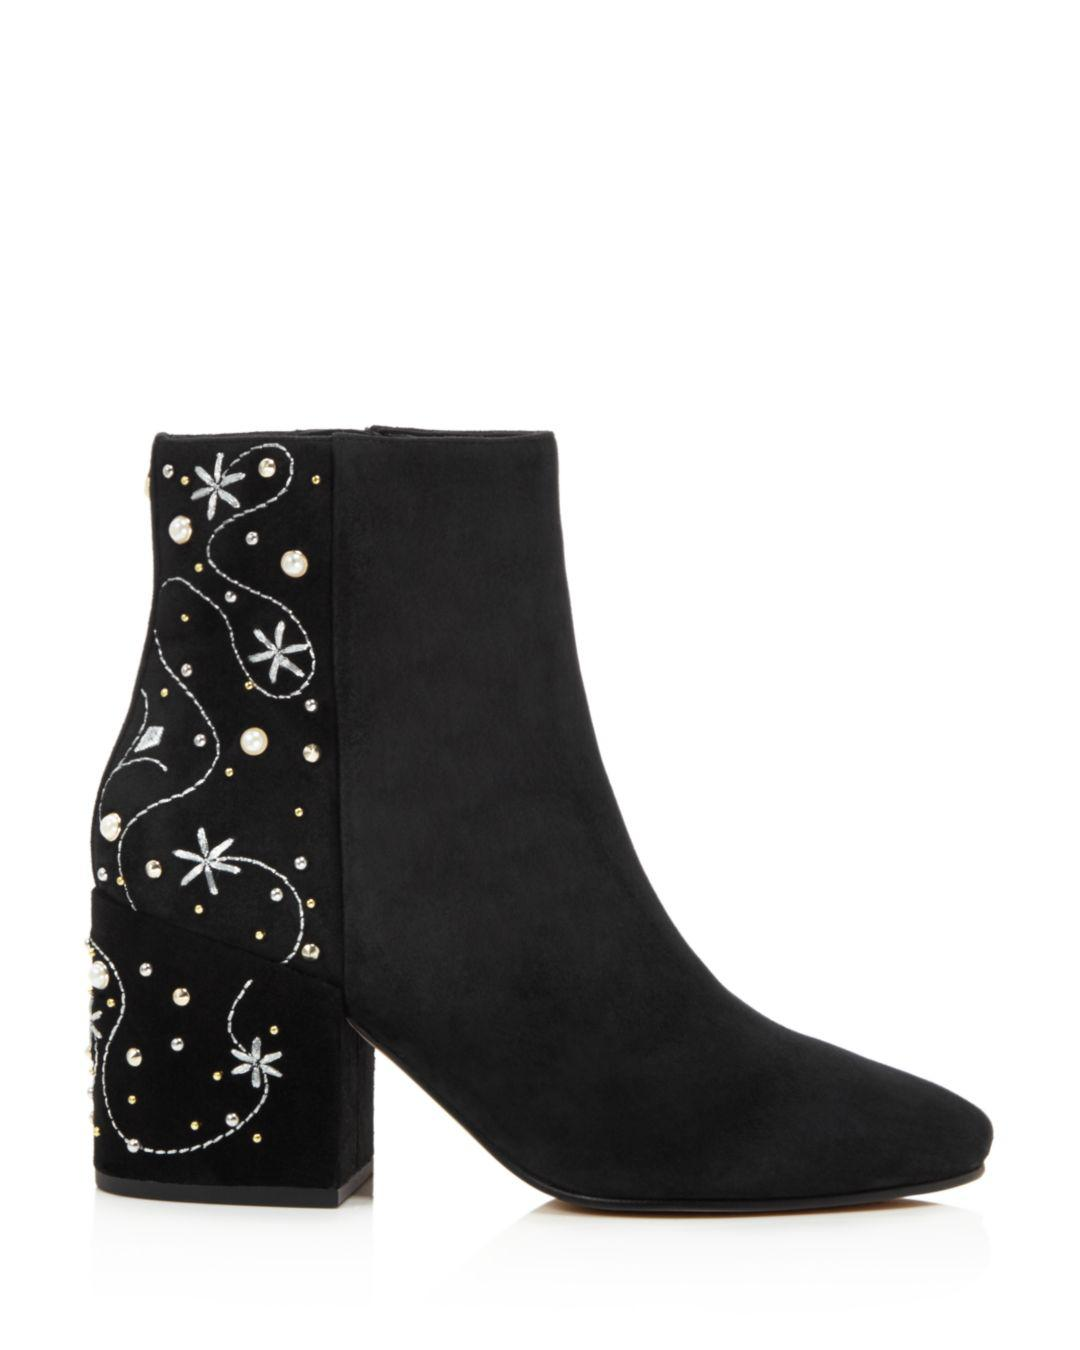 1ea0d321572287 Sam Edelman Taft Embroidered Faux Pearl Stud Boot in Black - Lyst